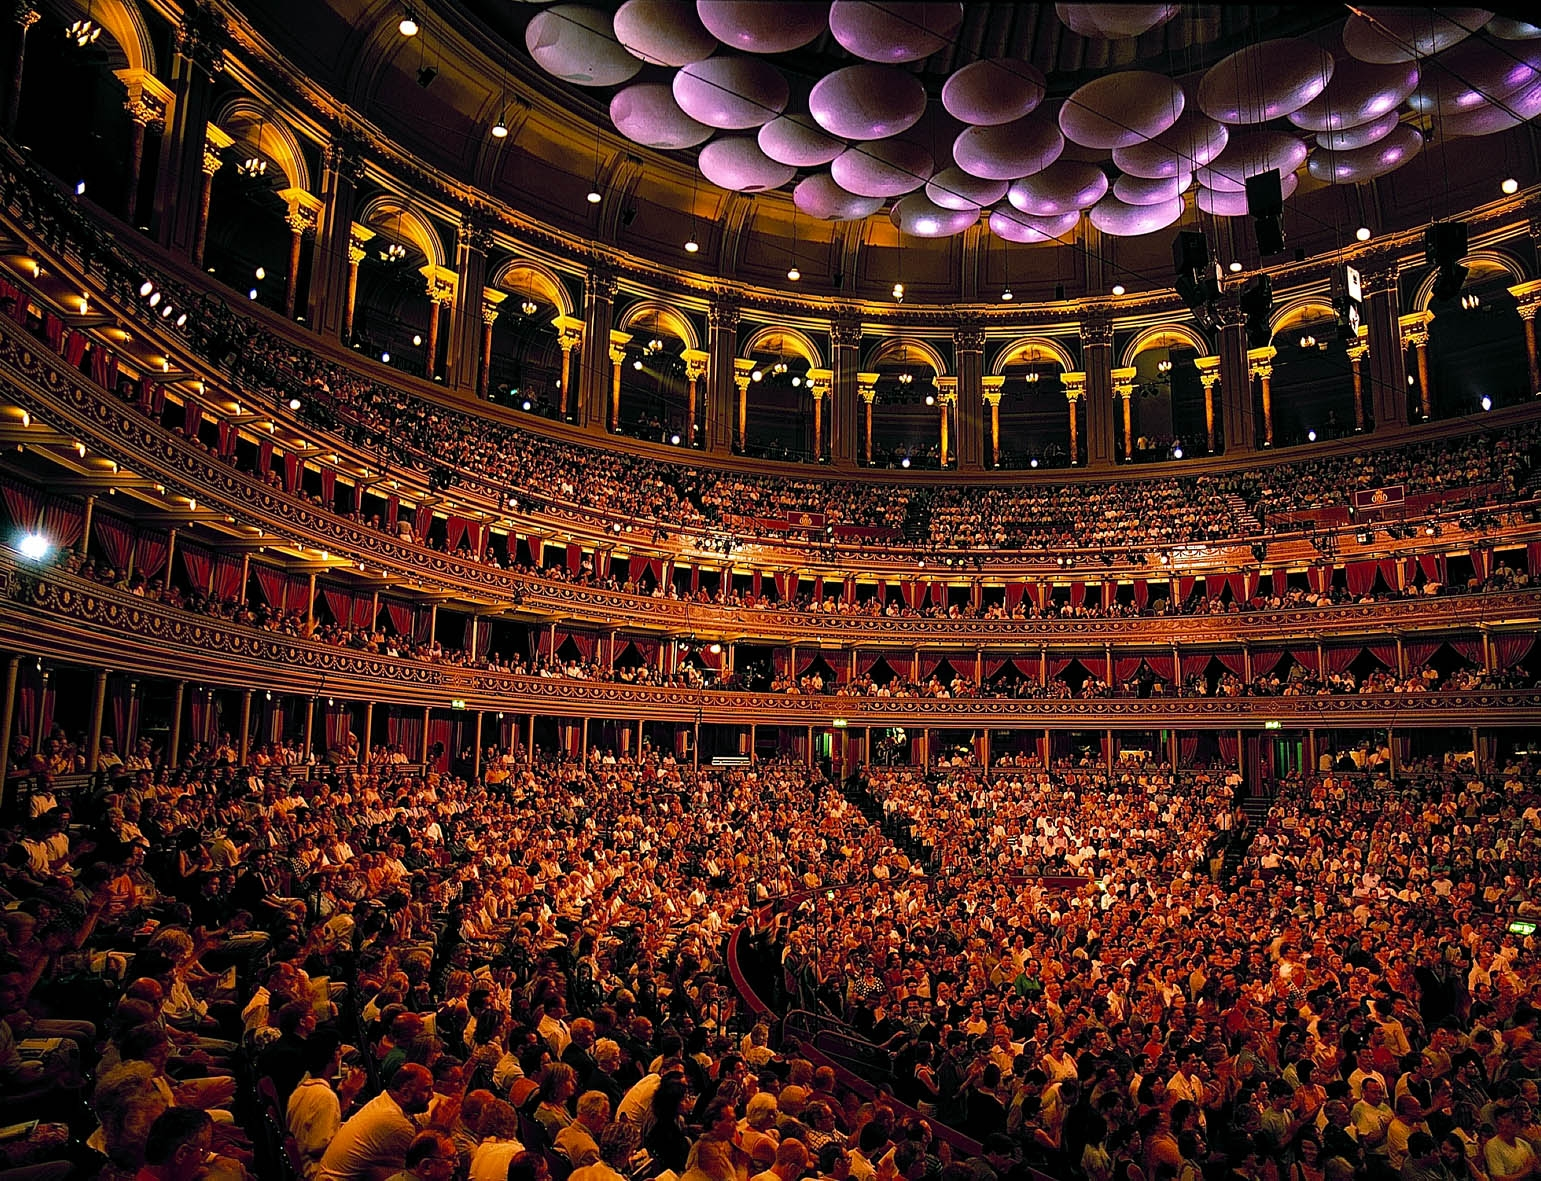 Third Light, a game changer for the Royal Albert Hall